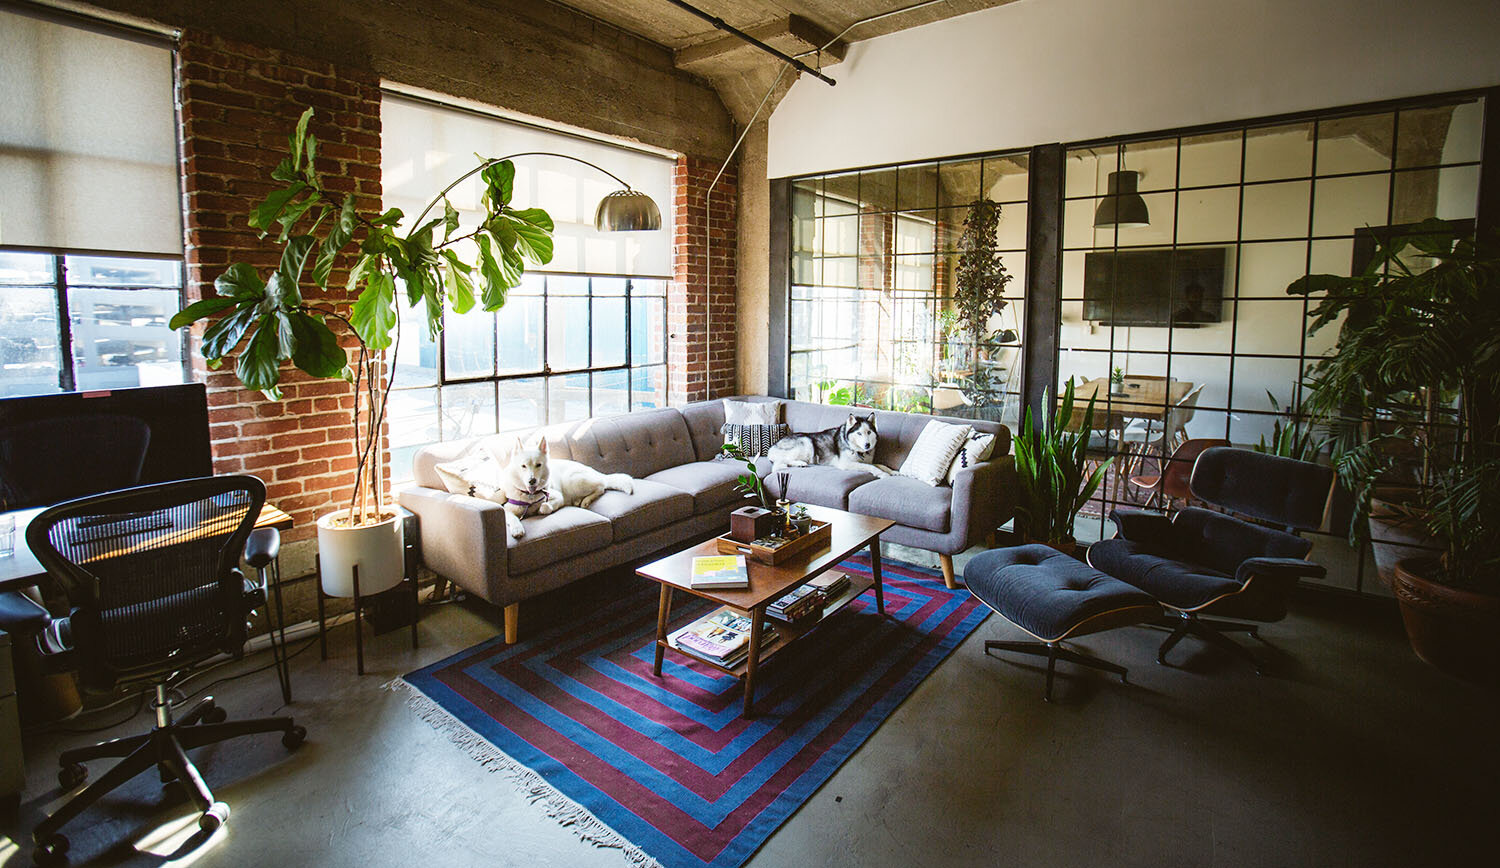 Keeper studio featured in Clio.#A haven for stories (and mezcal) in the L.A. Arts District